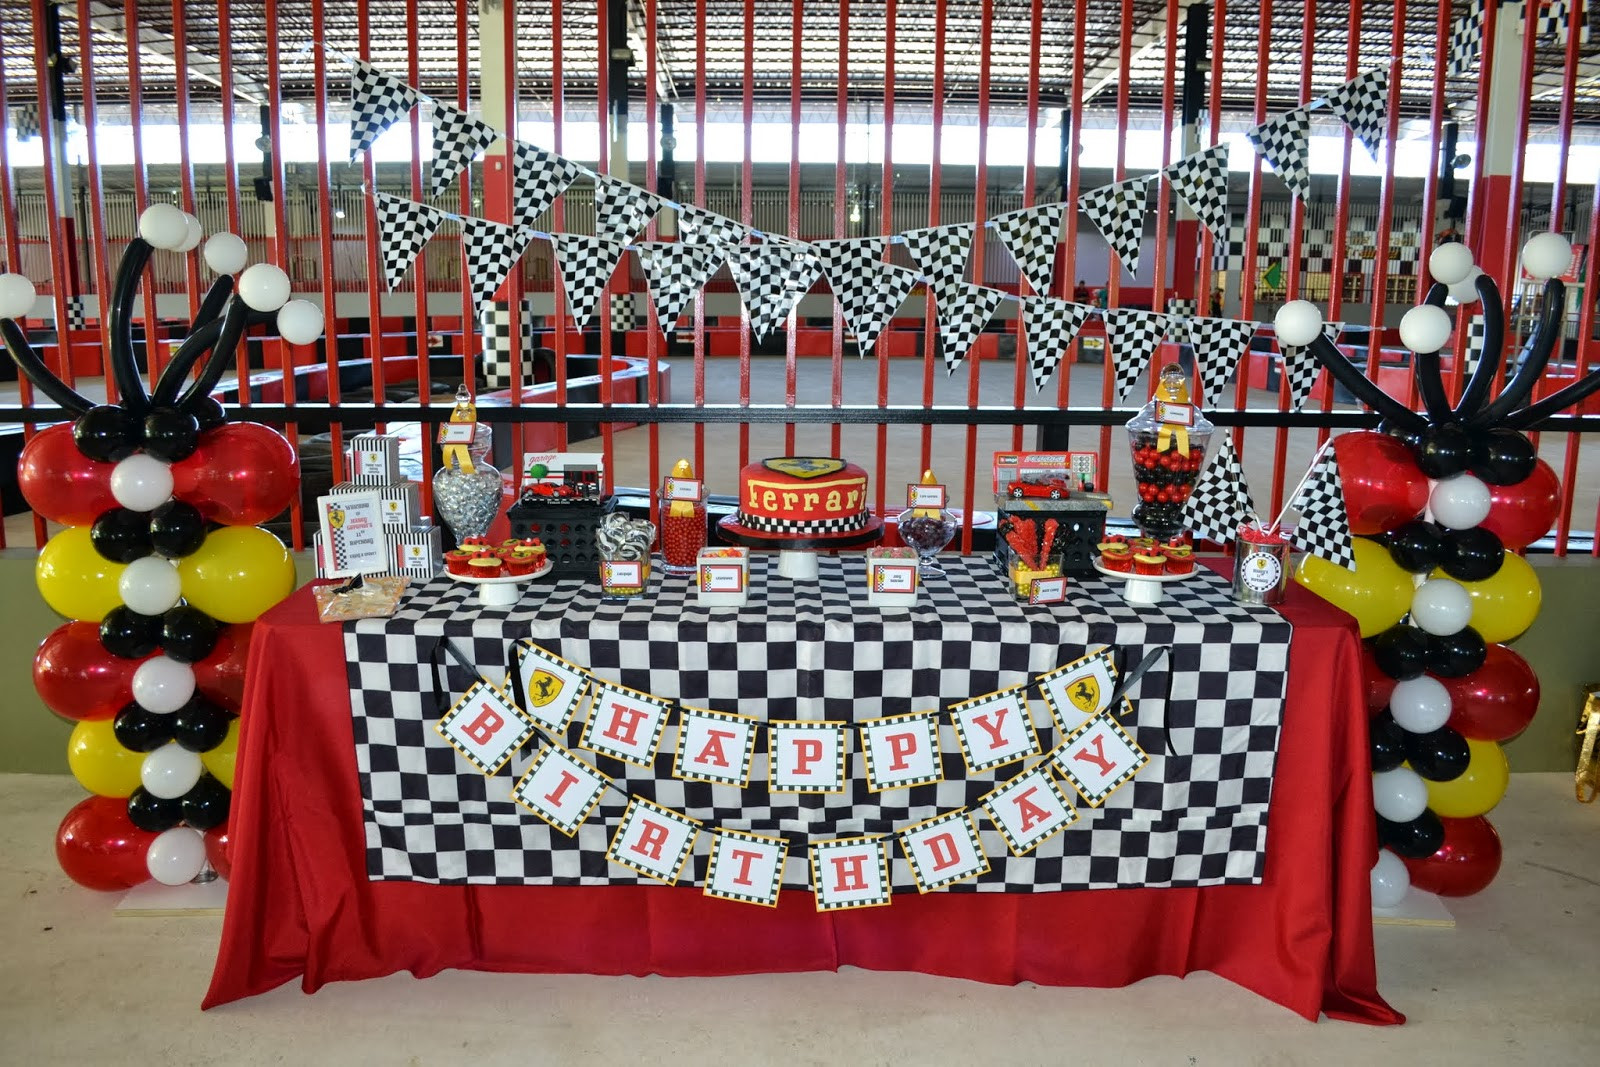 Best ideas about Cars Themed Birthday Party . Save or Pin Partylicious Events PR Ferrari Birthday Now.